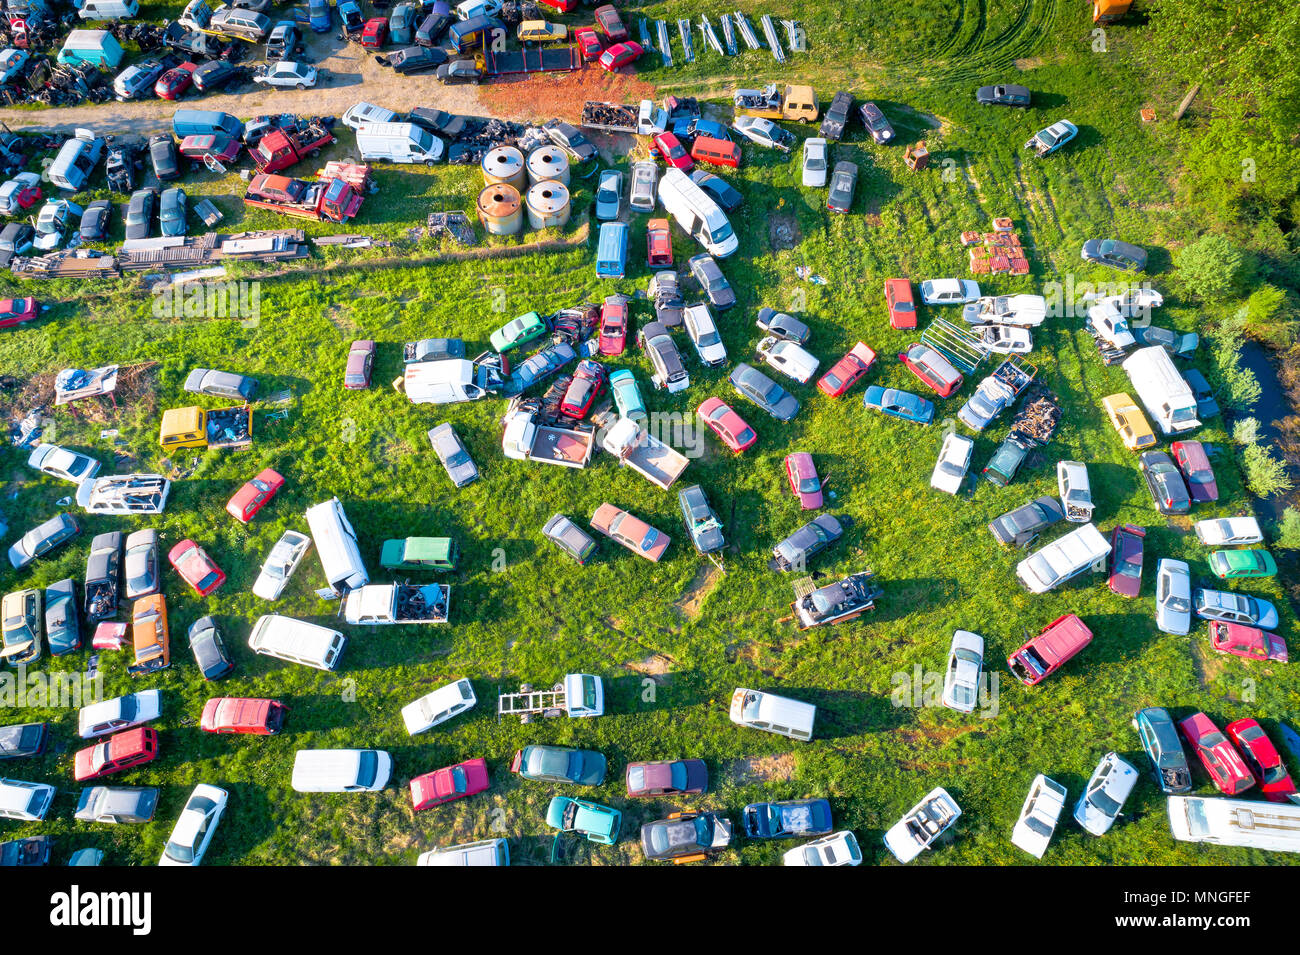 Car wrecks on meadow aerial view, ecological problem - Stock Image